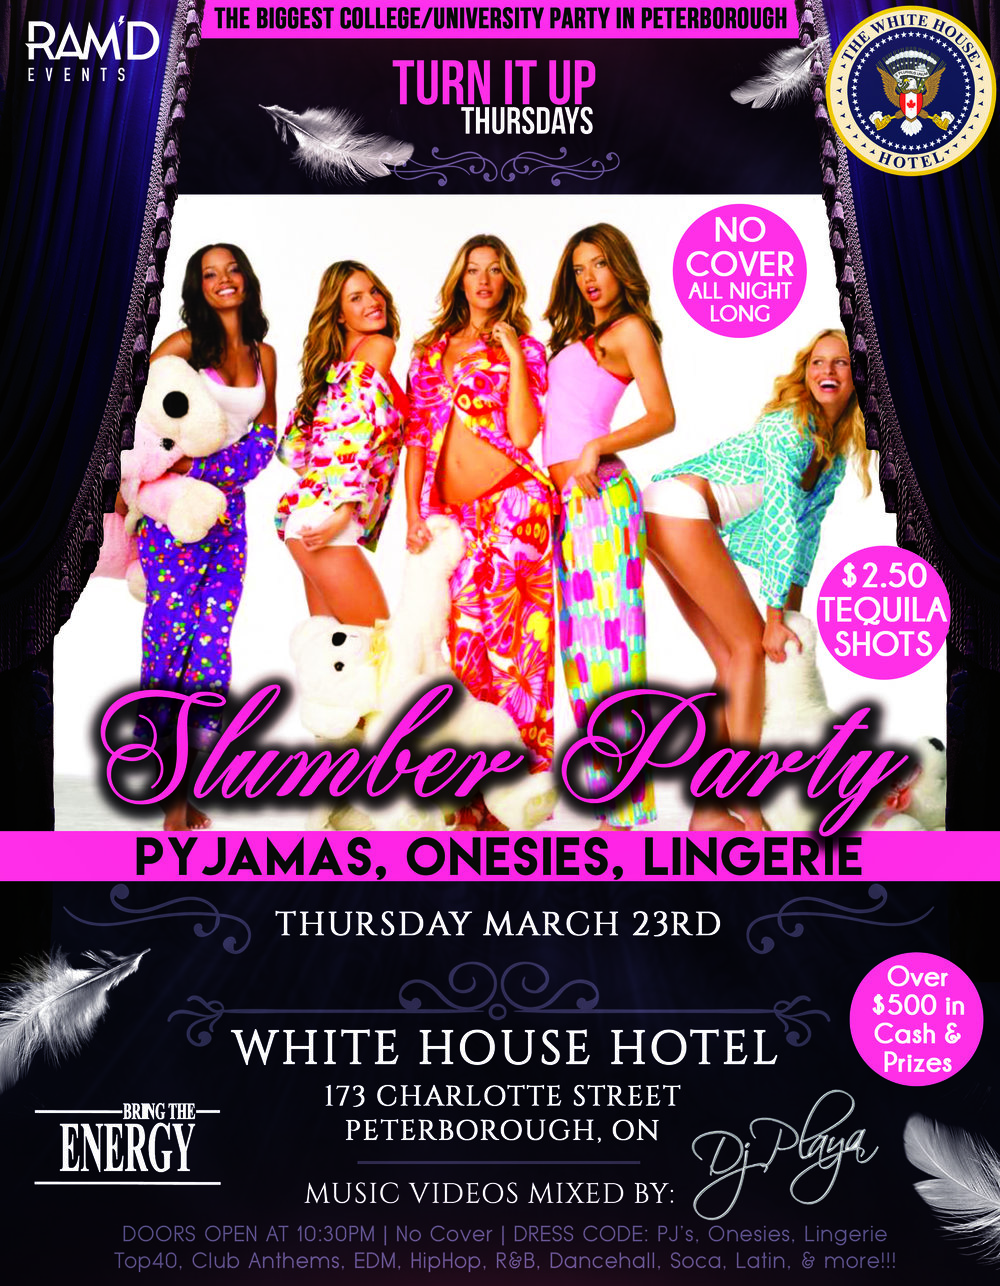 RAM'D Events presents...     SLUMBER PARTY at The White House Hotel  ~ Pyjamas ~ Onesies ~ Lingerie ~     Who hasn't wanted to wear their pyjamas to the club?  Well now's your chance!  Be comfortable, be cozy, be sexy... it's totally up to you!!!     OVER $500 IN CASH & PRIZES FOR BEST PJ'S, BEST ONESIES, AND BEST LINGERIE!!!     NO COVER ALL NIGHT LONG!!!  $2.50 TEQUILA SHOTS ALL NIGHT LONG!!!     Music Videos mixed by:  DJ Playa     Top40, Club Anthems, EDM, HipHop, R&B, Soca, Dancehall, Latin, & more!!!     White House Hotel  173 Charlotte Street  Peterborough, ON     19+ Event